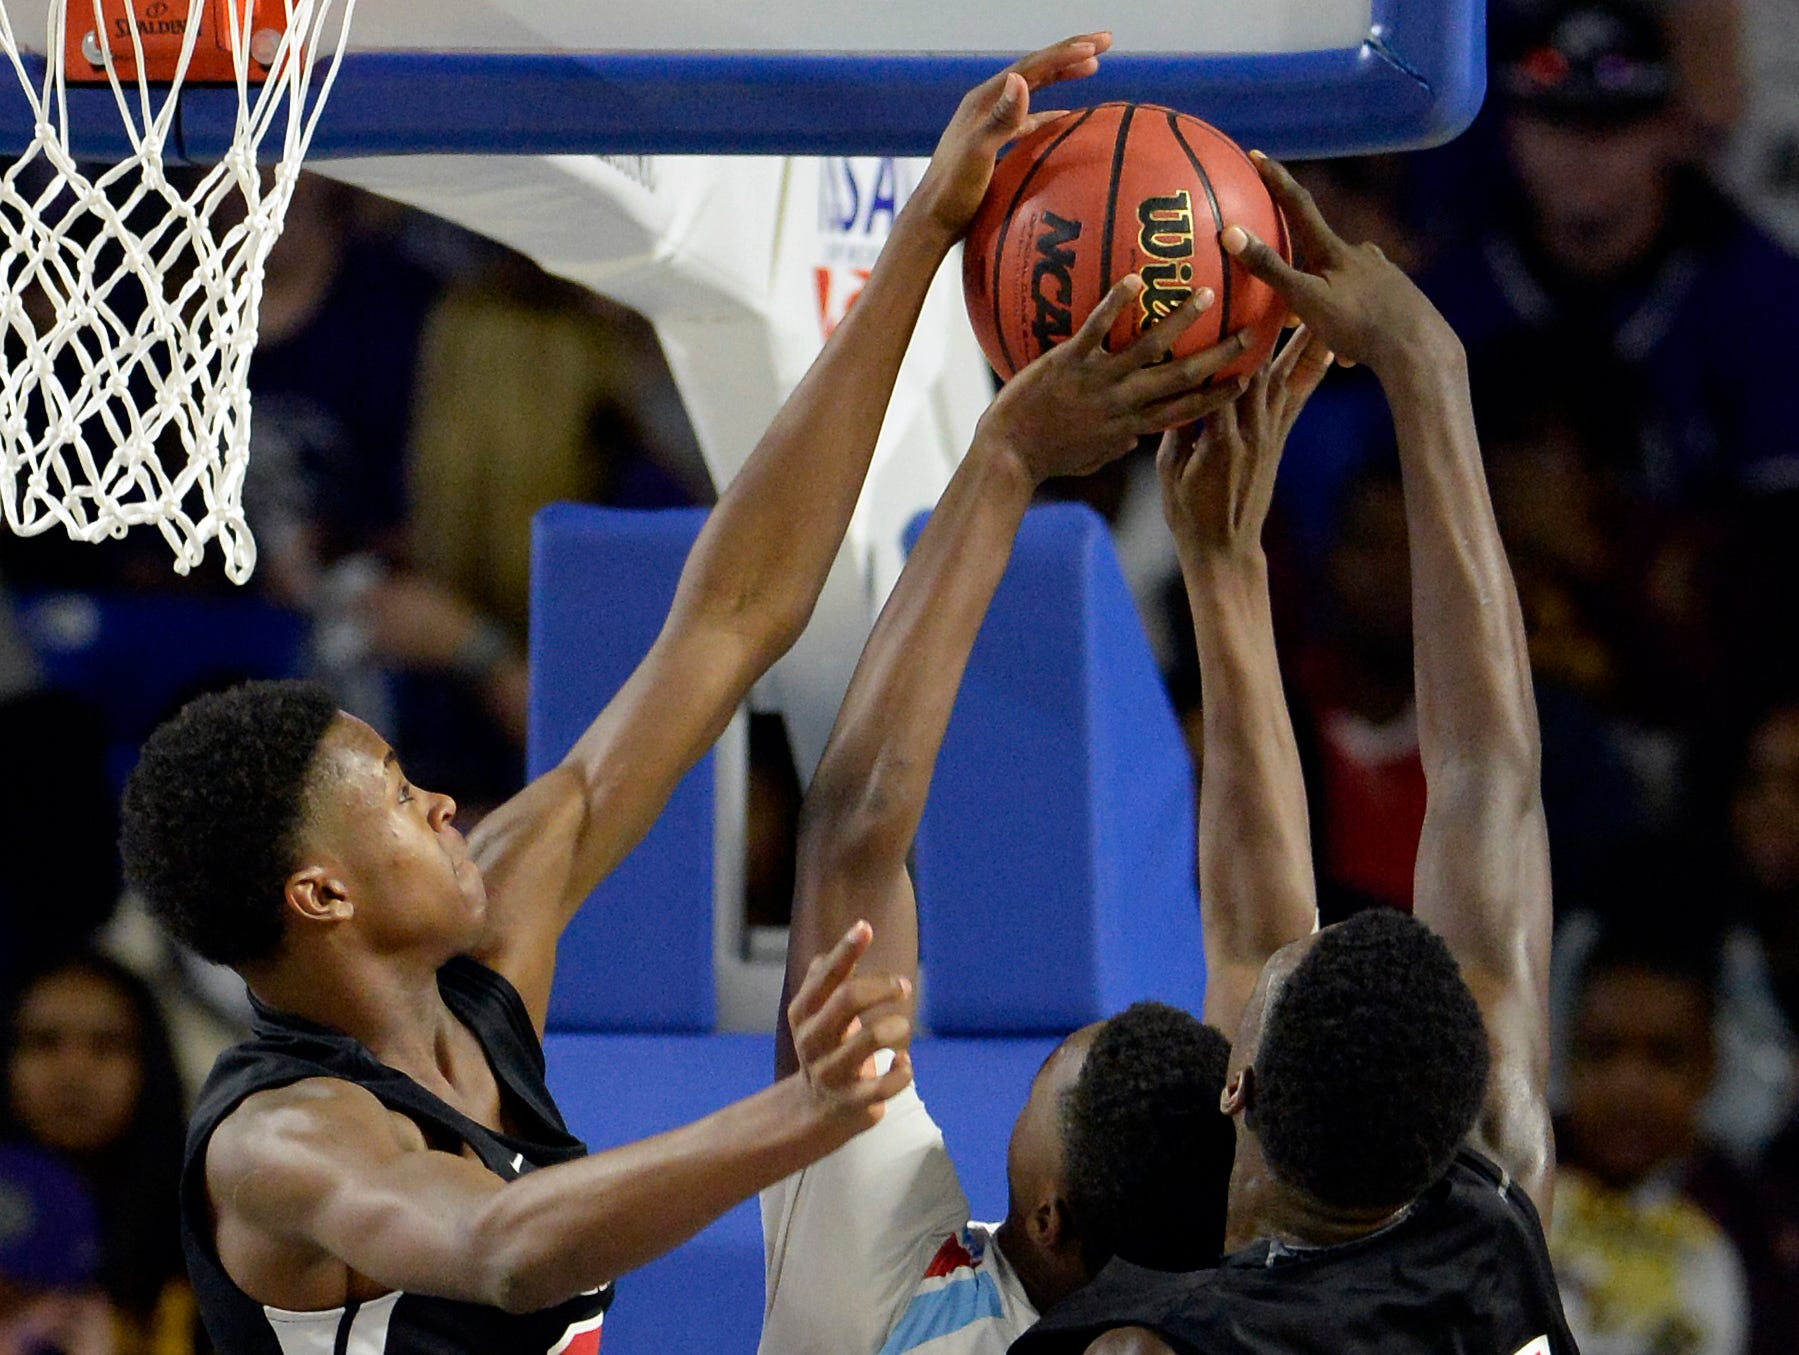 Pearl-Cohn guard Miquan Tucker, left, and forward Tyrone Marshall (24) block a shot by Brainerd forward Laderron Freeman (4) during the second half of an Class AA boys' state basketball quarterfinal game against Brainerd Wednesday, March 13, 2019, in Murfreesboro, Tenn. Brainerd won 76-73.